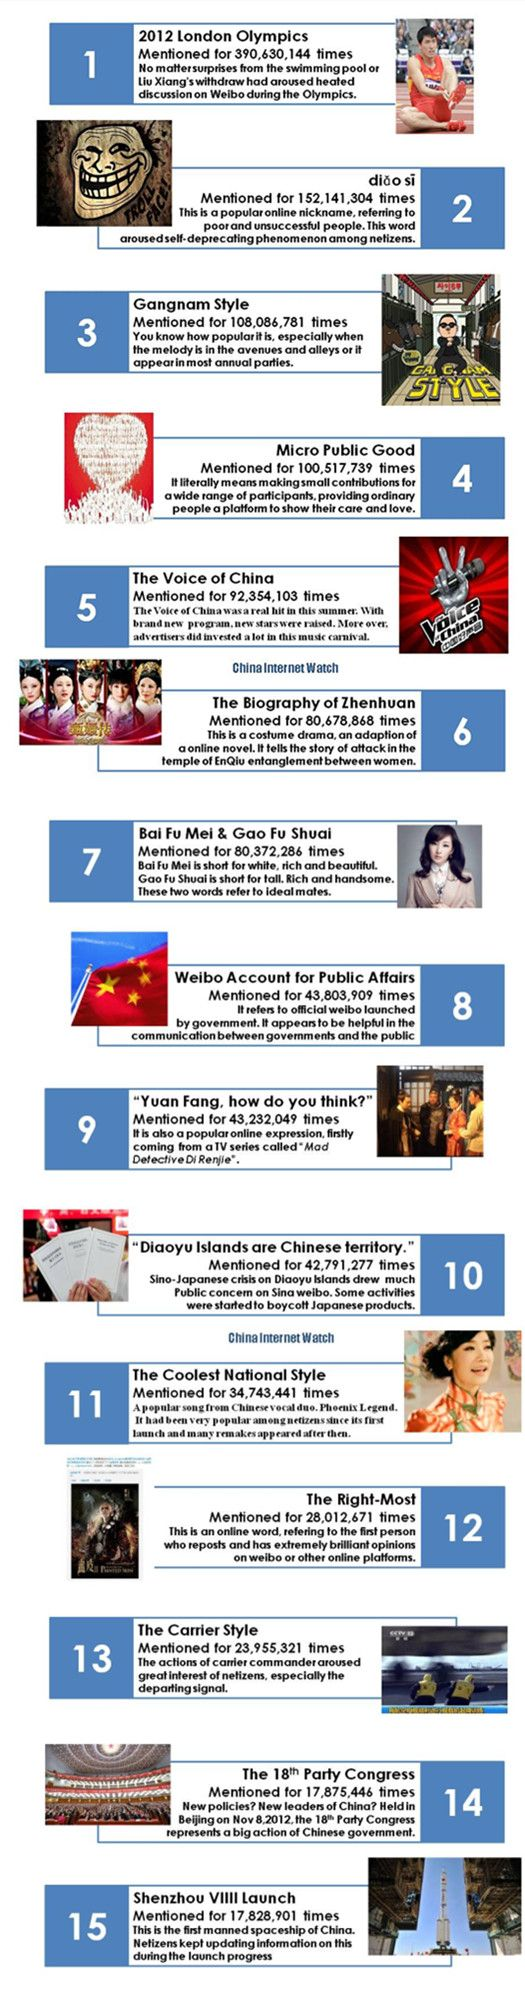 Top 15 Most Popular Topics on Sina Weibo